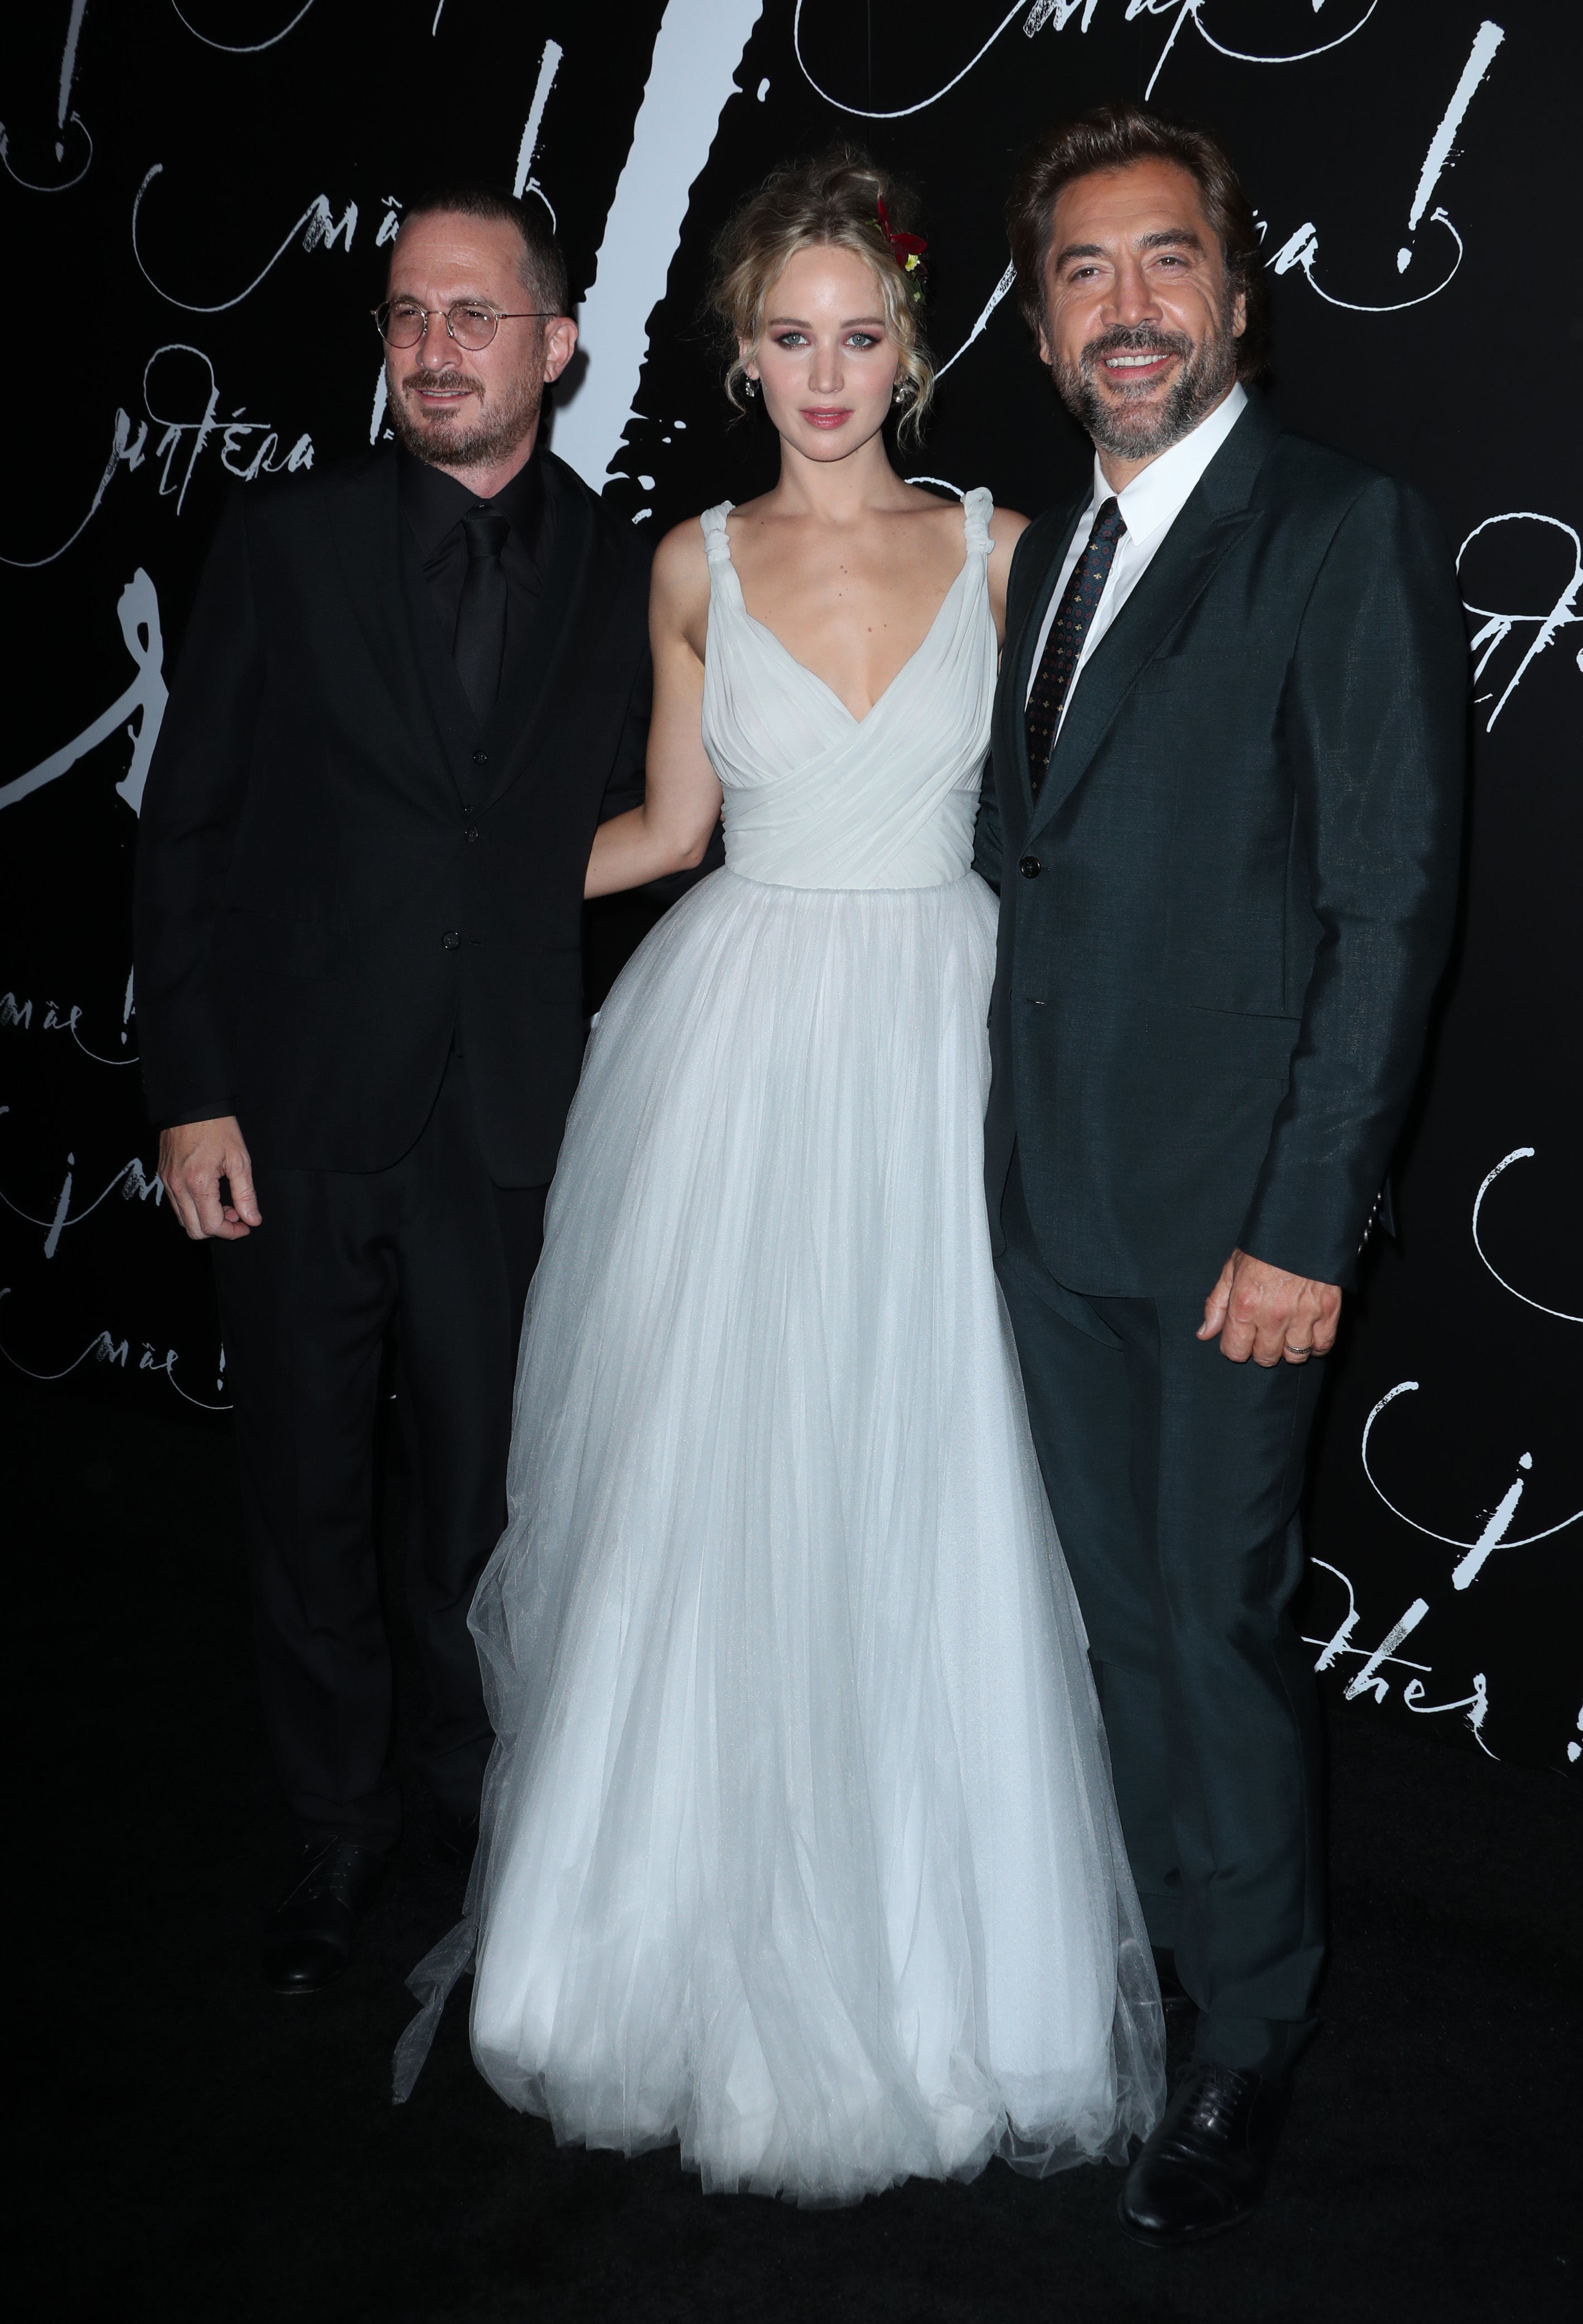 """Darren Aronofsky, Jennifer Lawrence and Javier Bardem attend the """"Mother!"""" premiere in New York City on Sept. 13, 2017."""